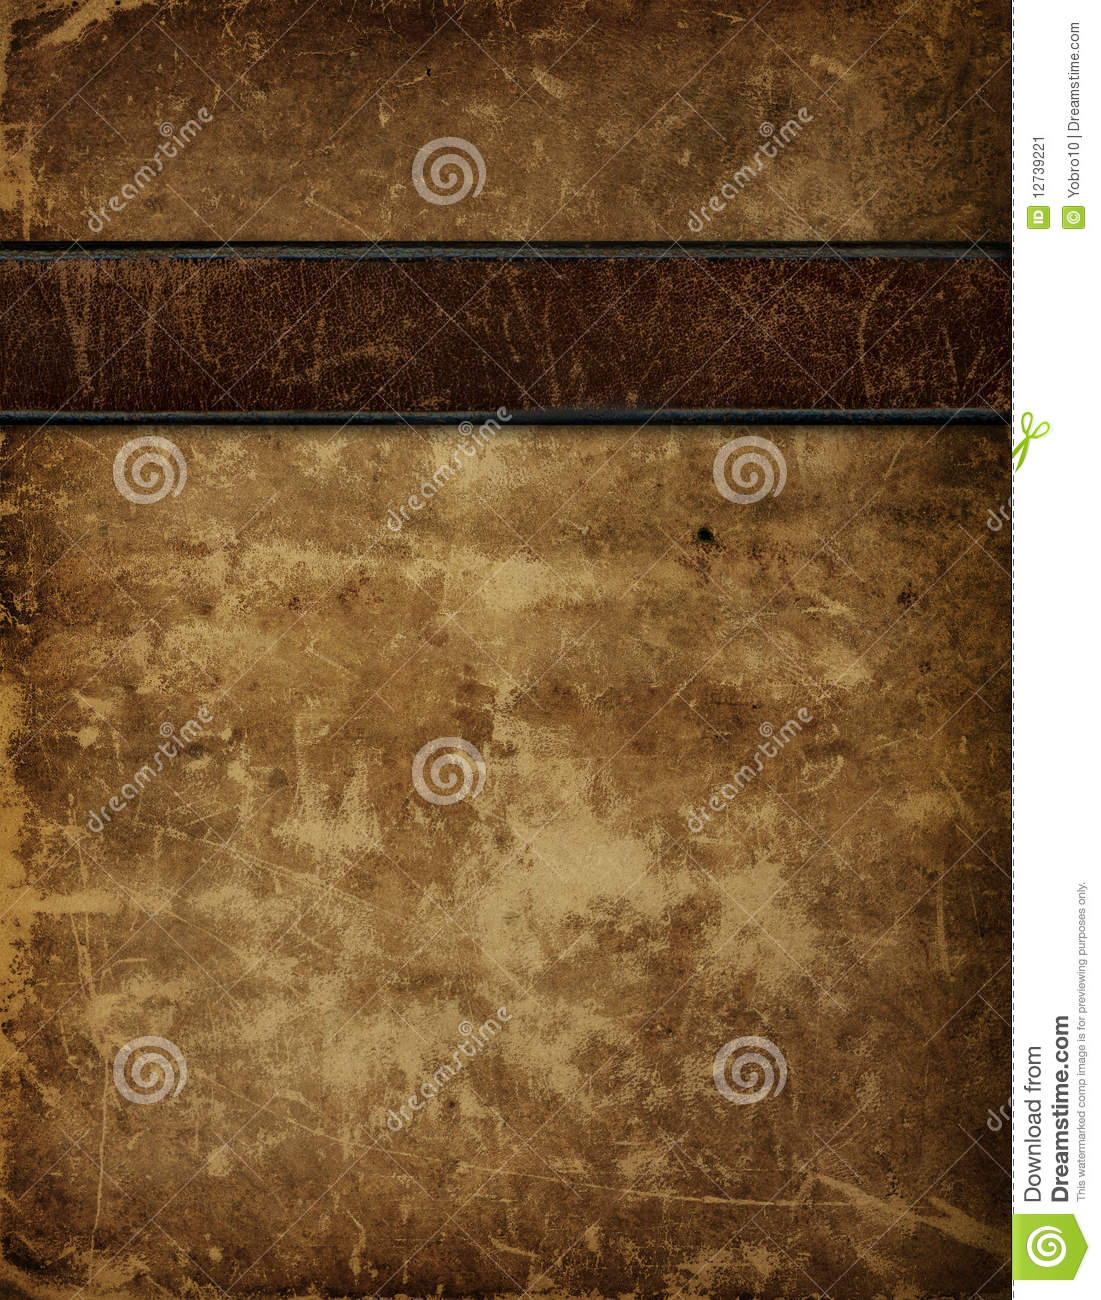 Vintage Leather Book Cover : Antique leather book cover stock image